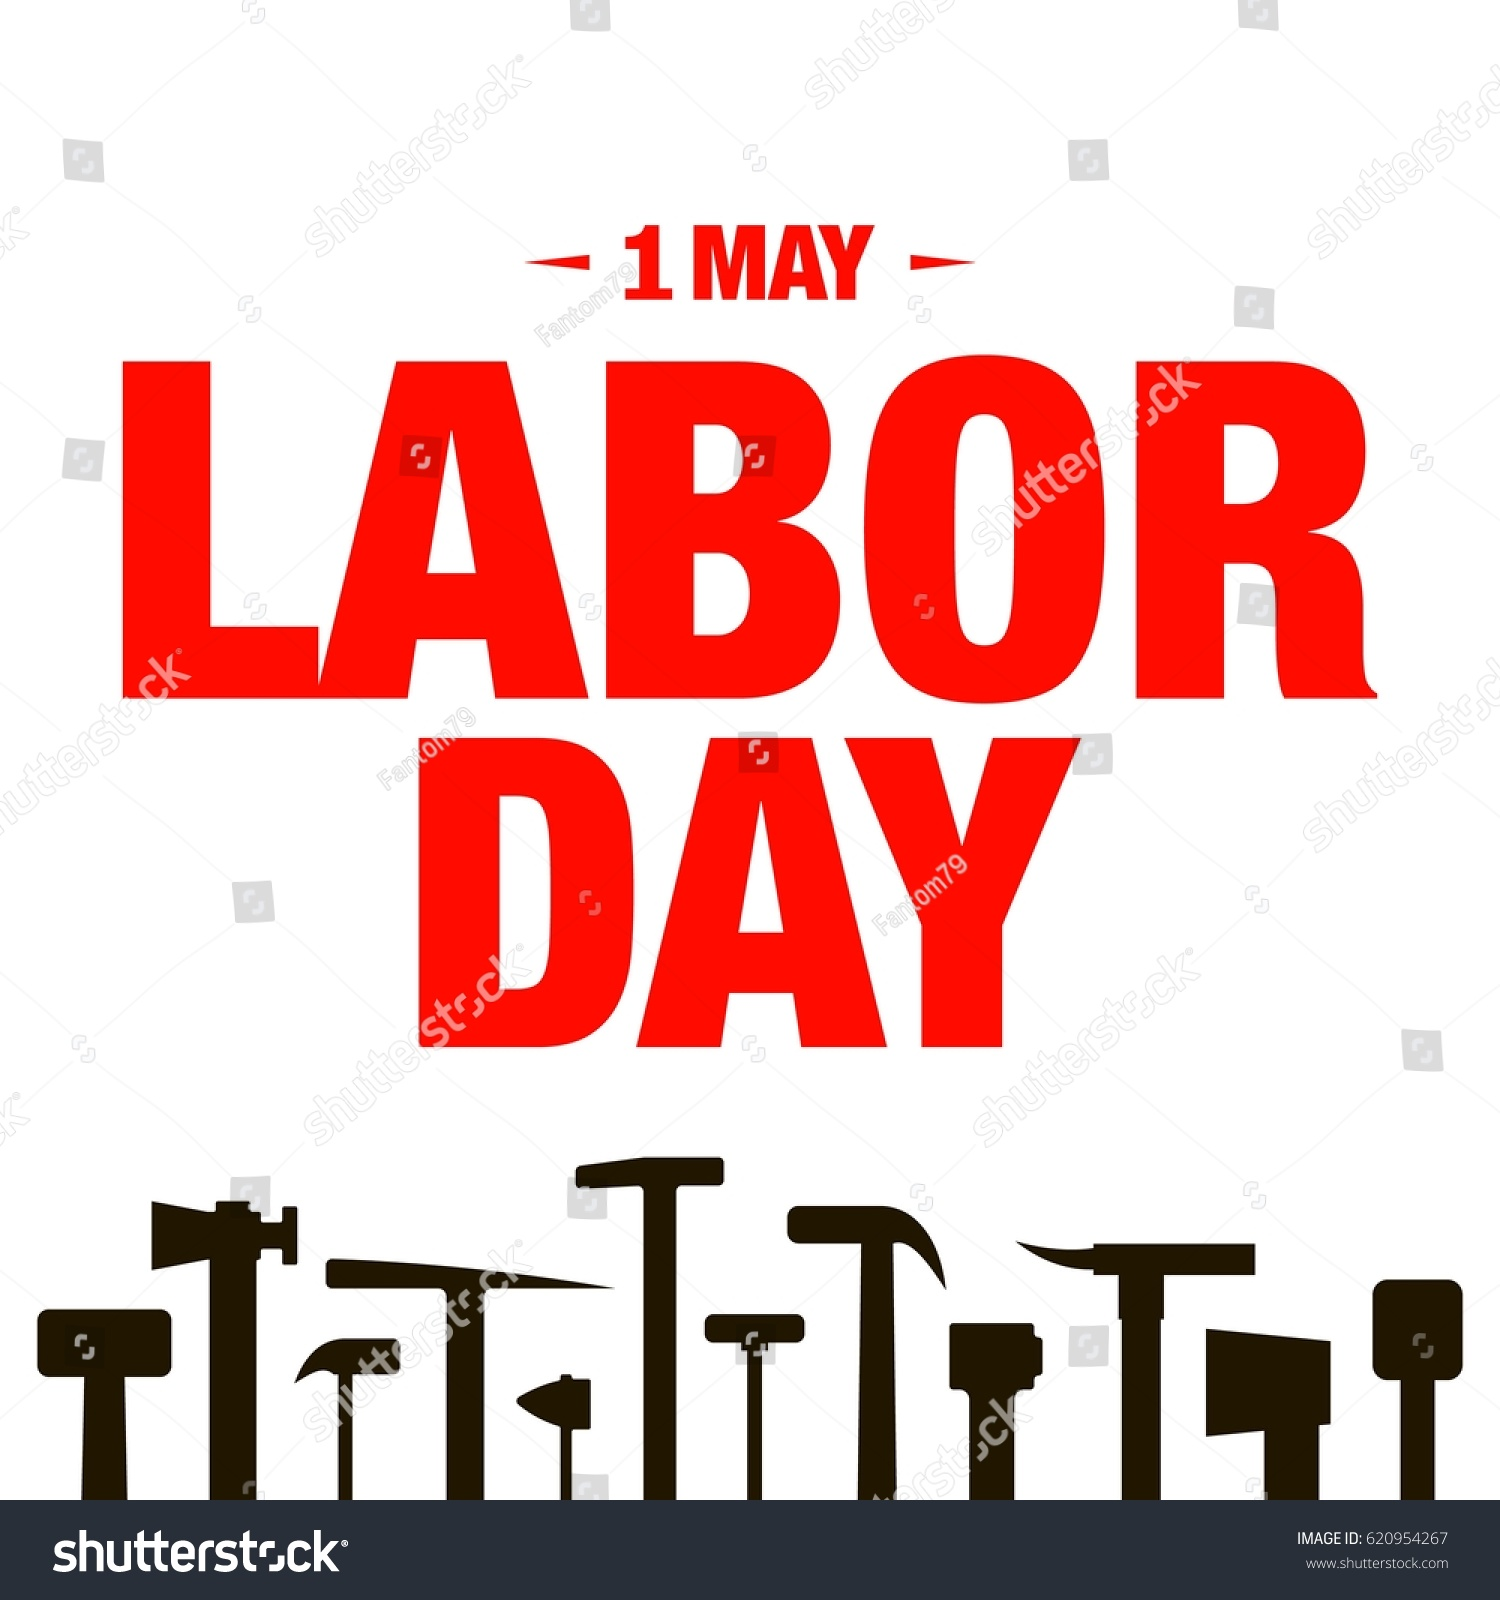 Poster design tools - Vector Illustration With 1 May Labor Day Poster Design With Building Tools Silhouette Icons On White